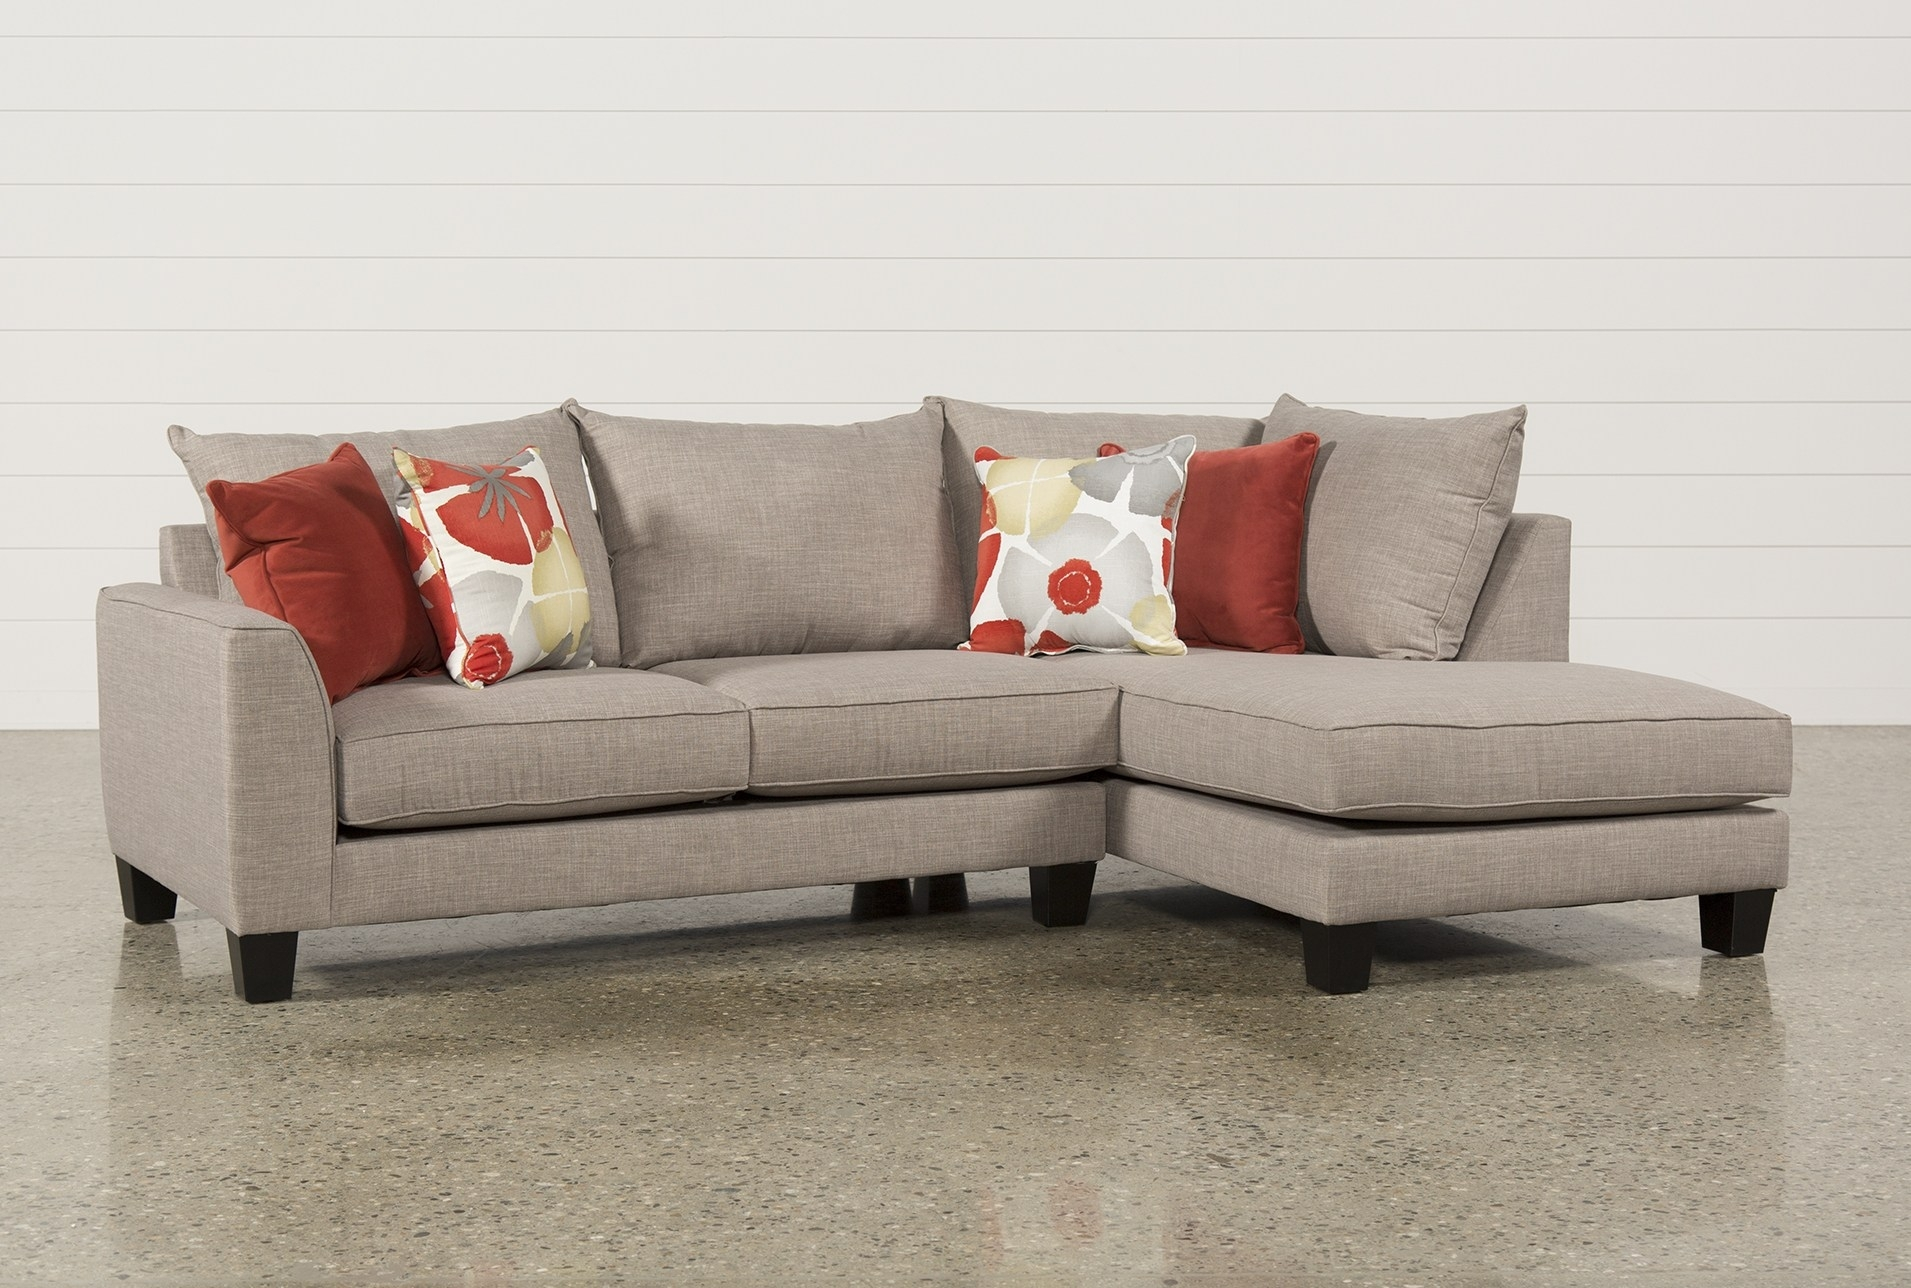 Mcdade Graphite 2 Piece Sectional – Geek Tattoos In Arrowmask 2 Piece Sectionals With Laf Chaise (View 24 of 25)